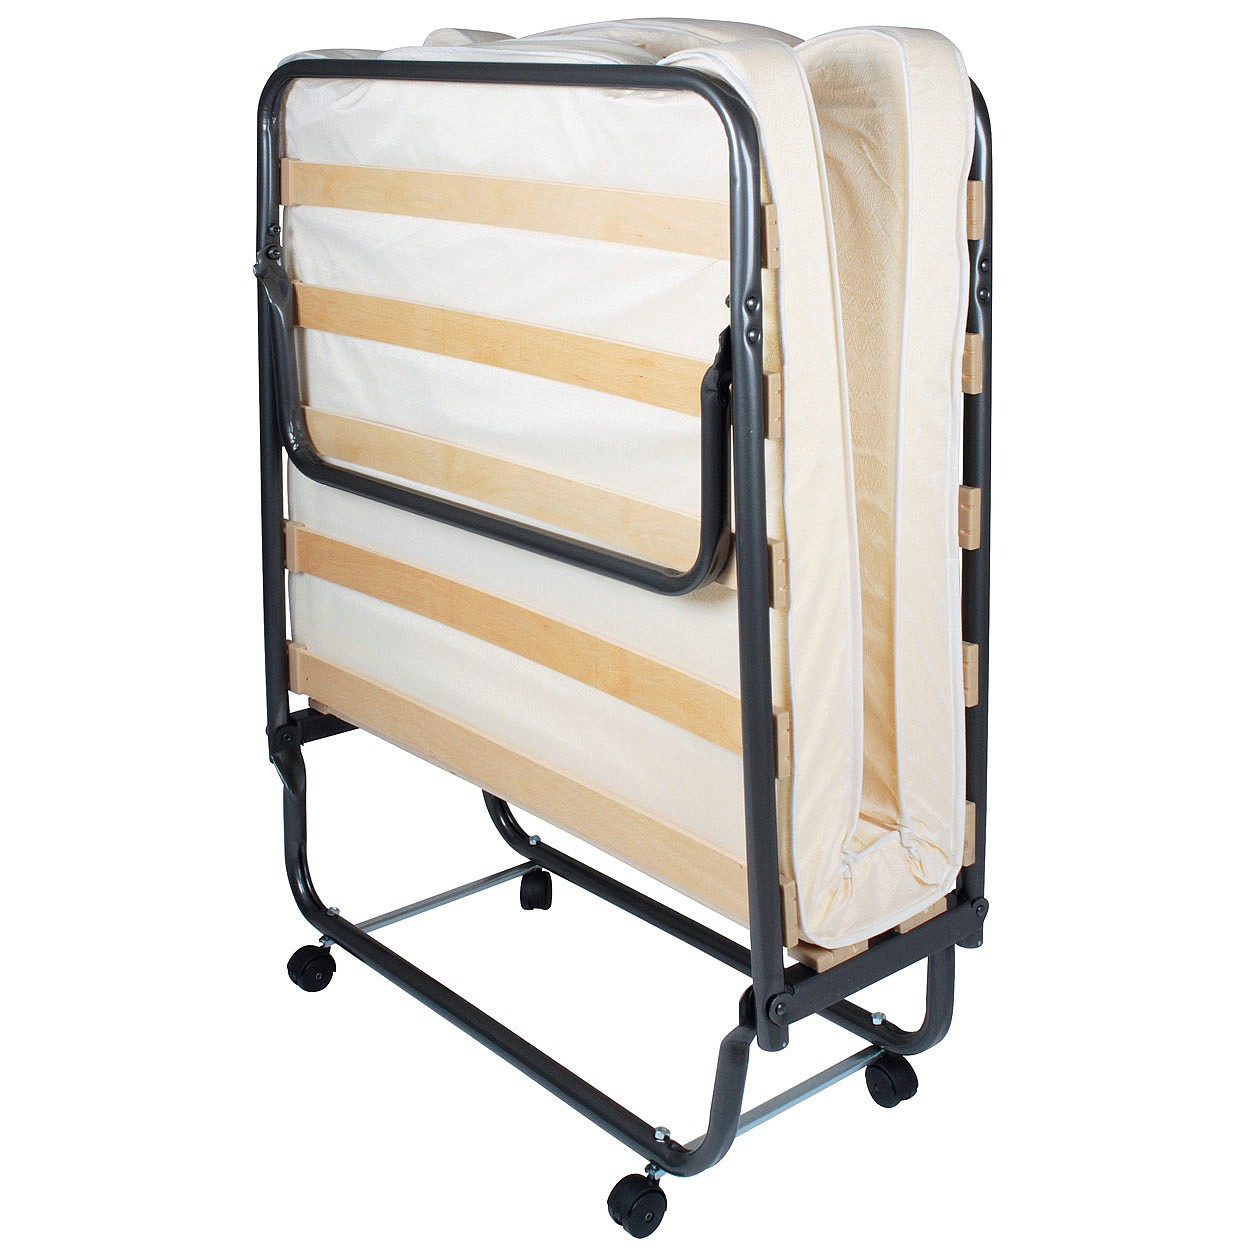 essential foldaway prod bed p wid hei spin home qlt guest